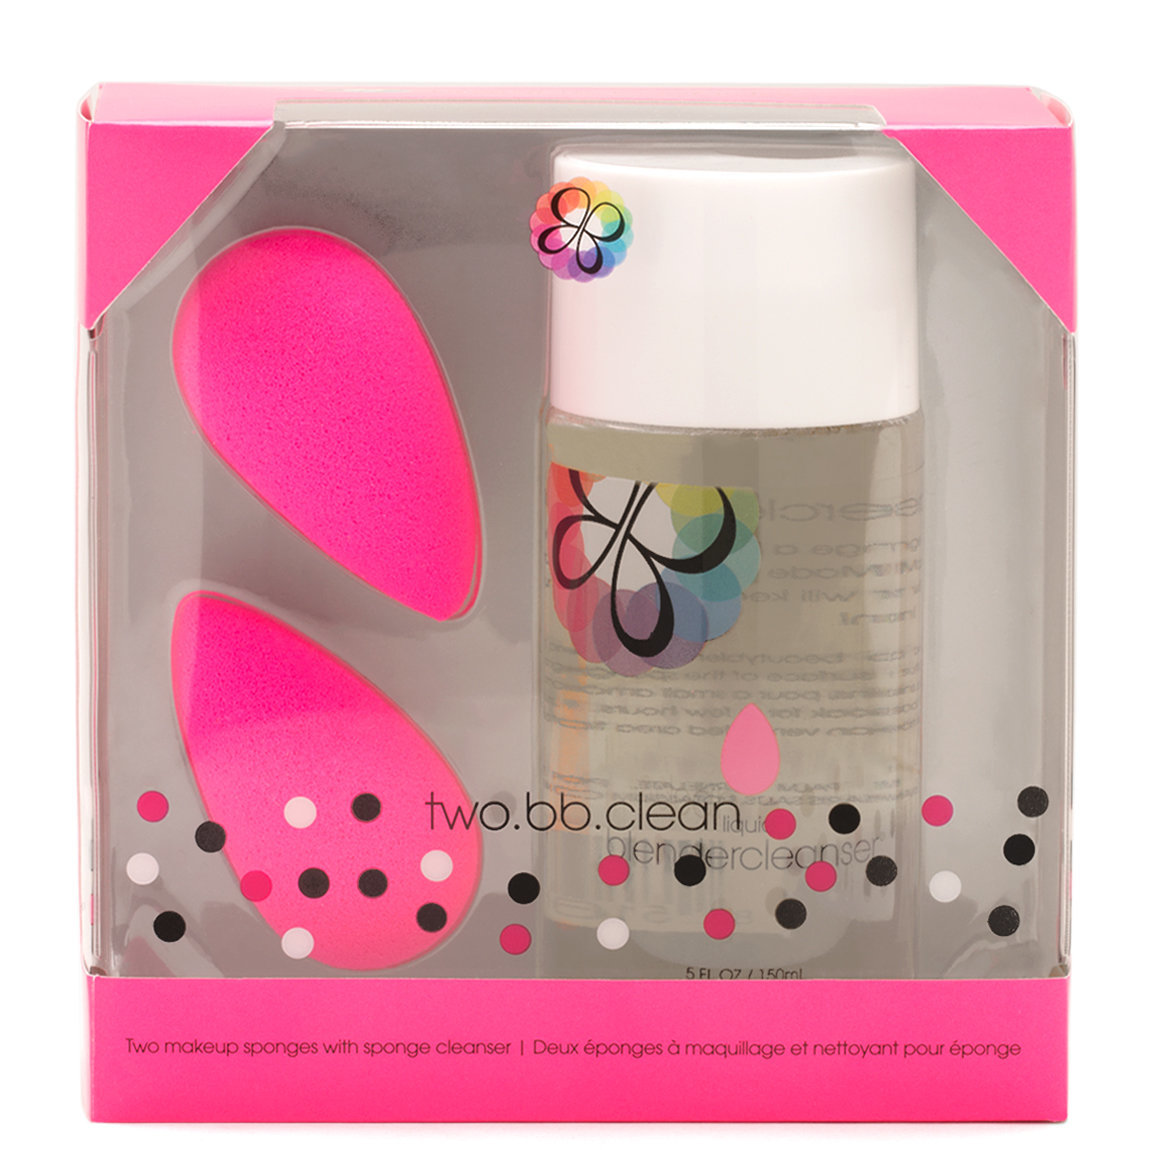 beautyblender two.bb.clean product smear.